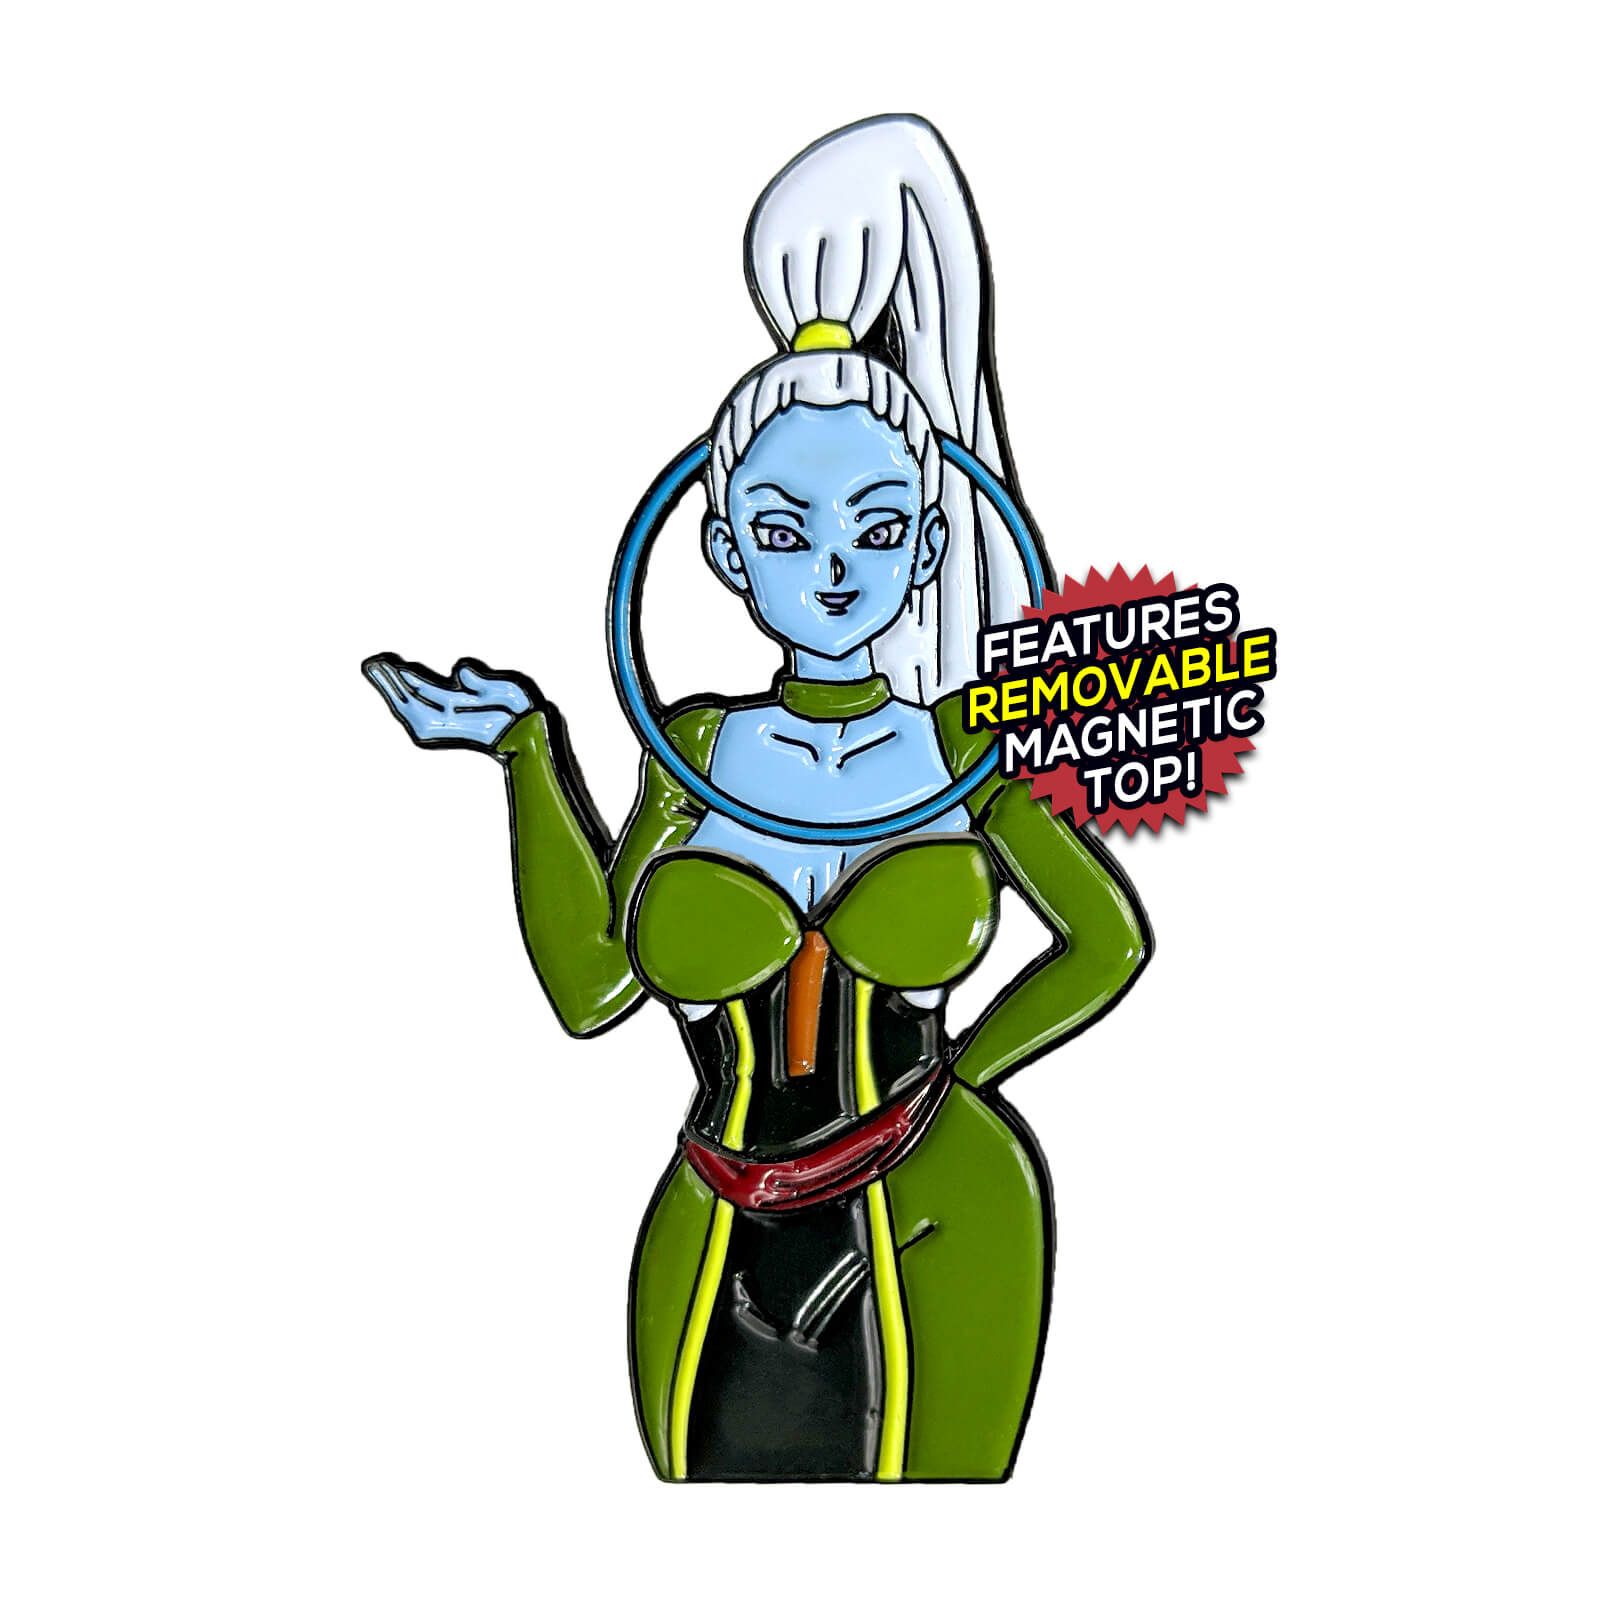 Vados Dragon Ball After Hours Enamel Pin Kingofthepin Com She is a daughter of the grand minister and the elder sister of whis. vados dragon ball after hours enamel pin